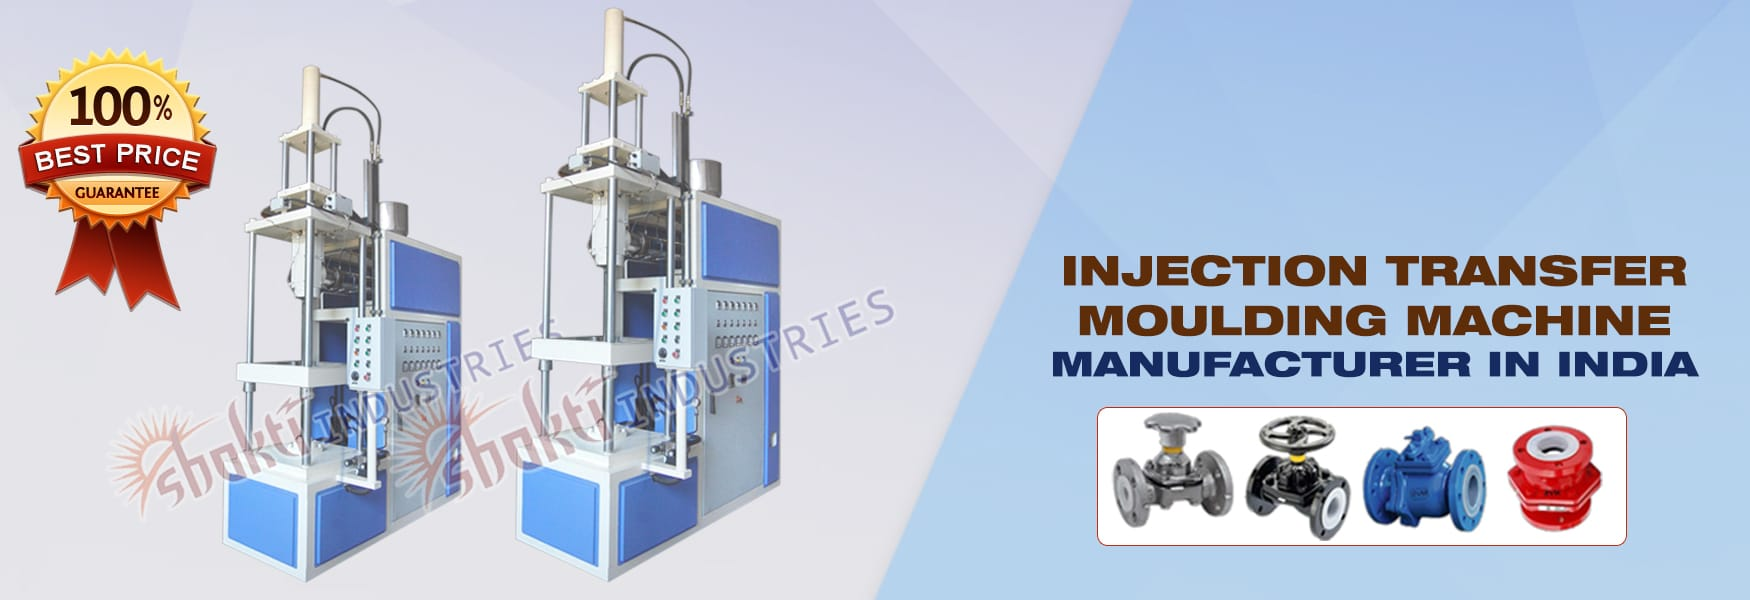 injection-transfer-moulding-machine